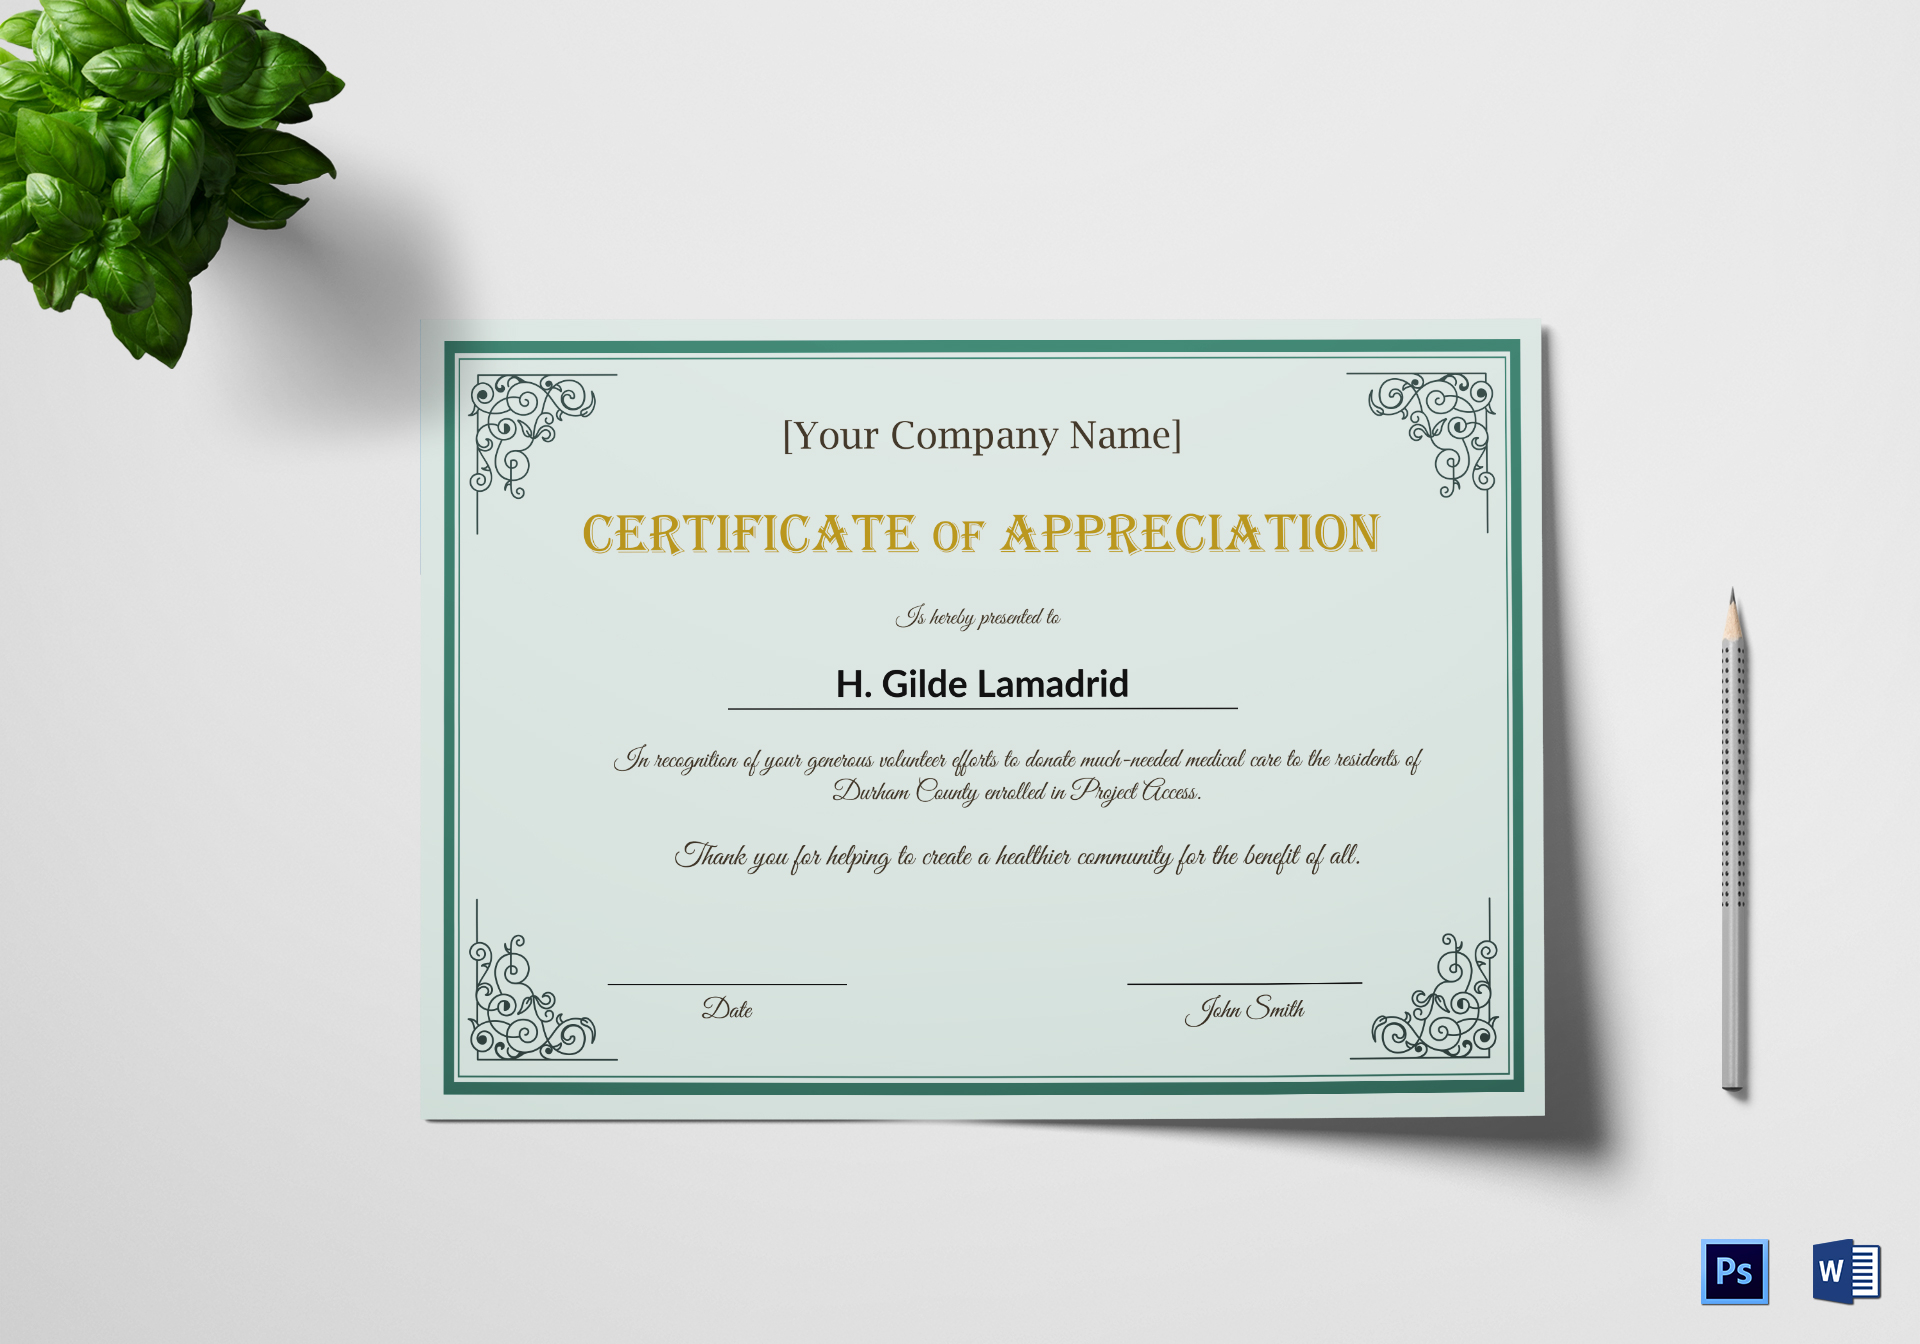 Company Employee Appreciation Certificate Design Template In Psd Word